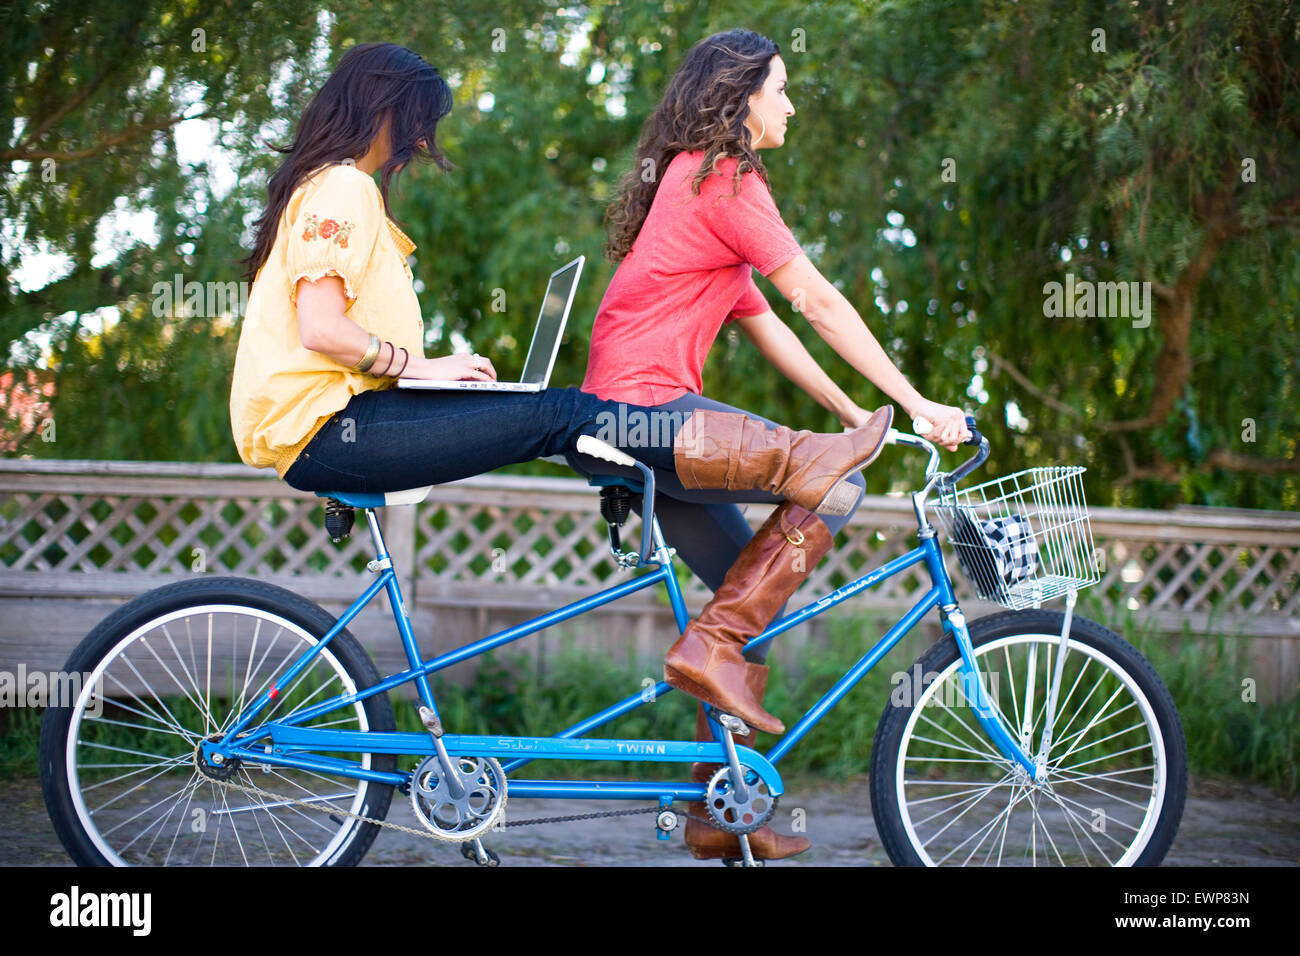 Two women riding a tandem bike while the woman on back surfs the internet on a laptop - Stock Image